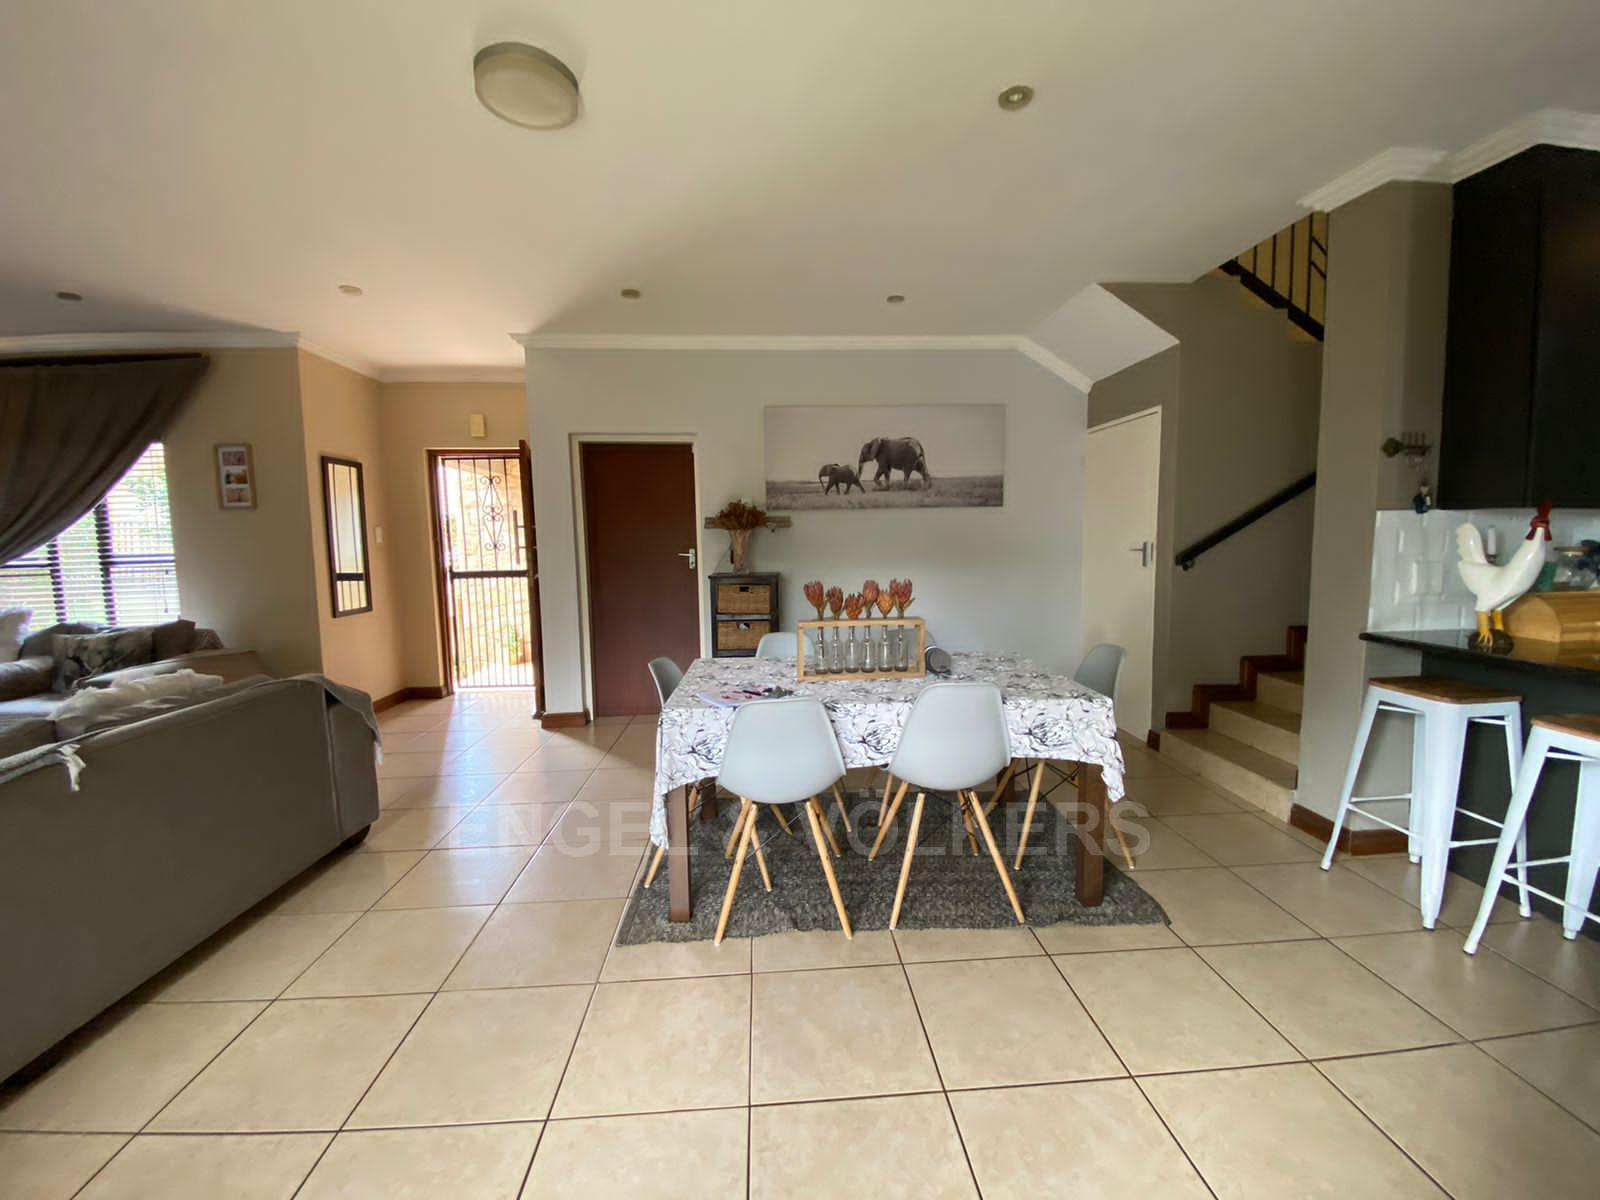 House in Melodie - Dining area 1